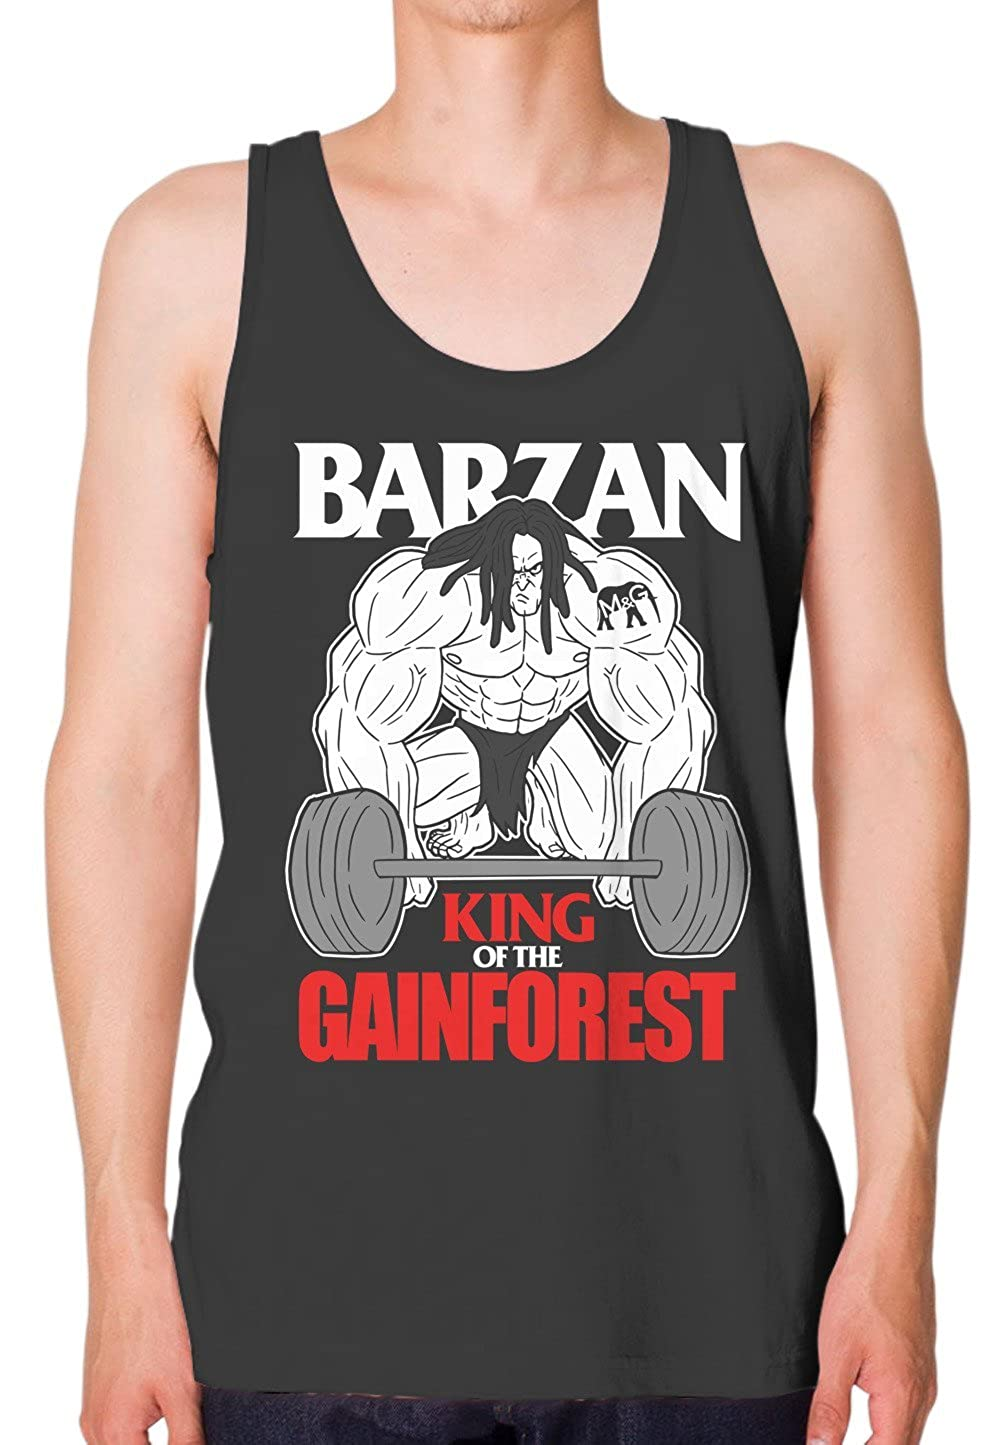 Bro Science Men's Barzan Tank-top 3394-528